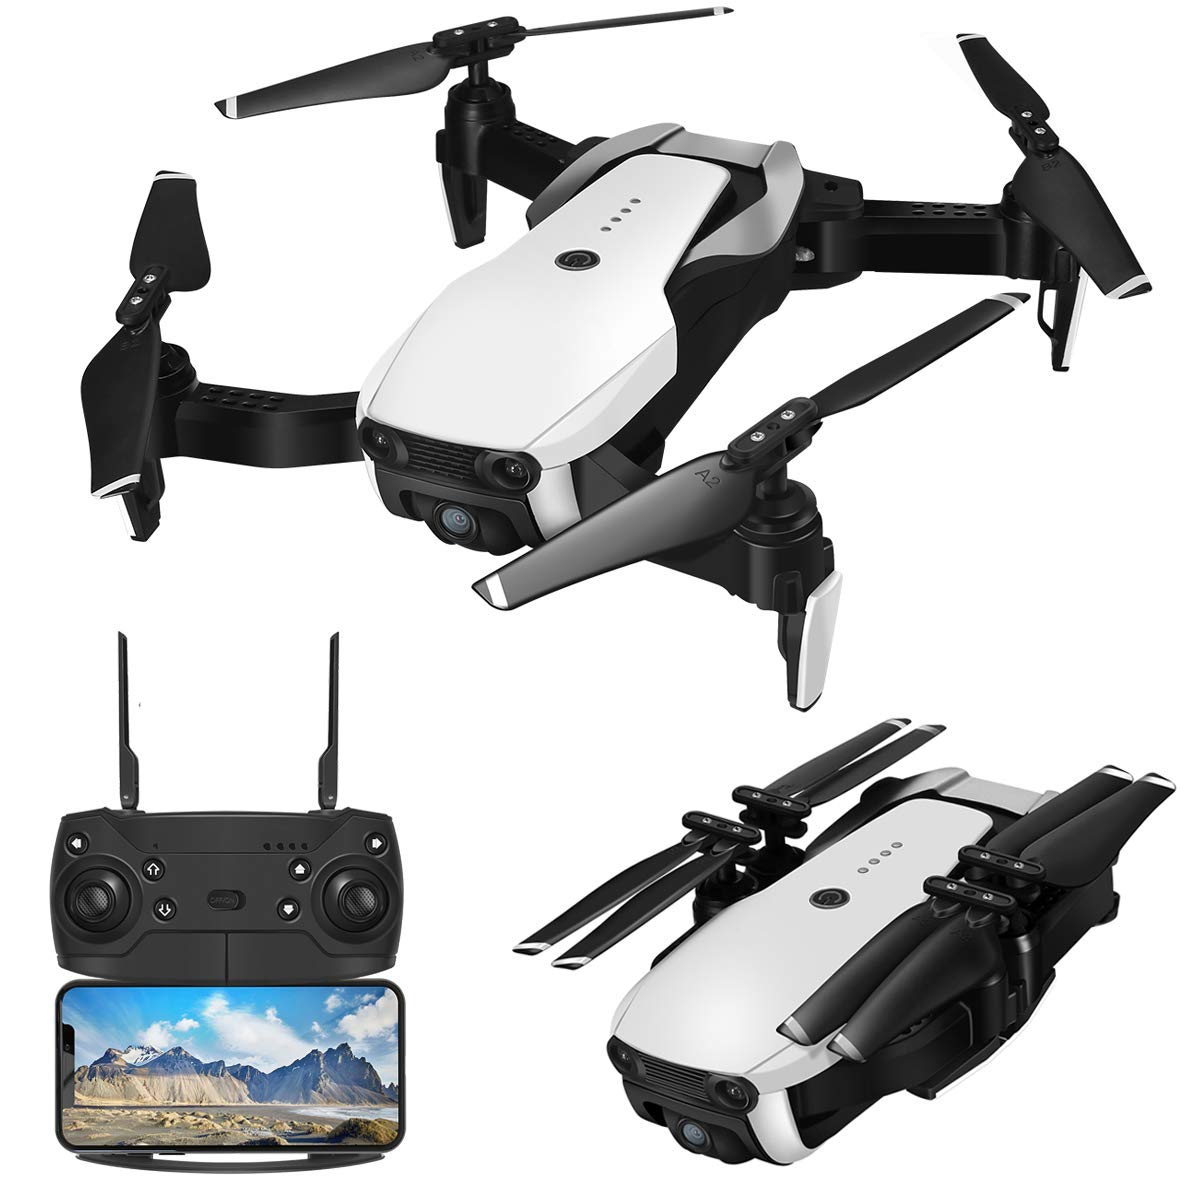 Drones with Camera 1080P for Adults,EACHINE E511 WiFi FPV Live Video Quadcopter with 120° FOV 1080P HD Camera, 17mins Long Flight Time Foldable RC Drone RTF - Altitude Hold, 3D Flip, APP Control by EACHINE